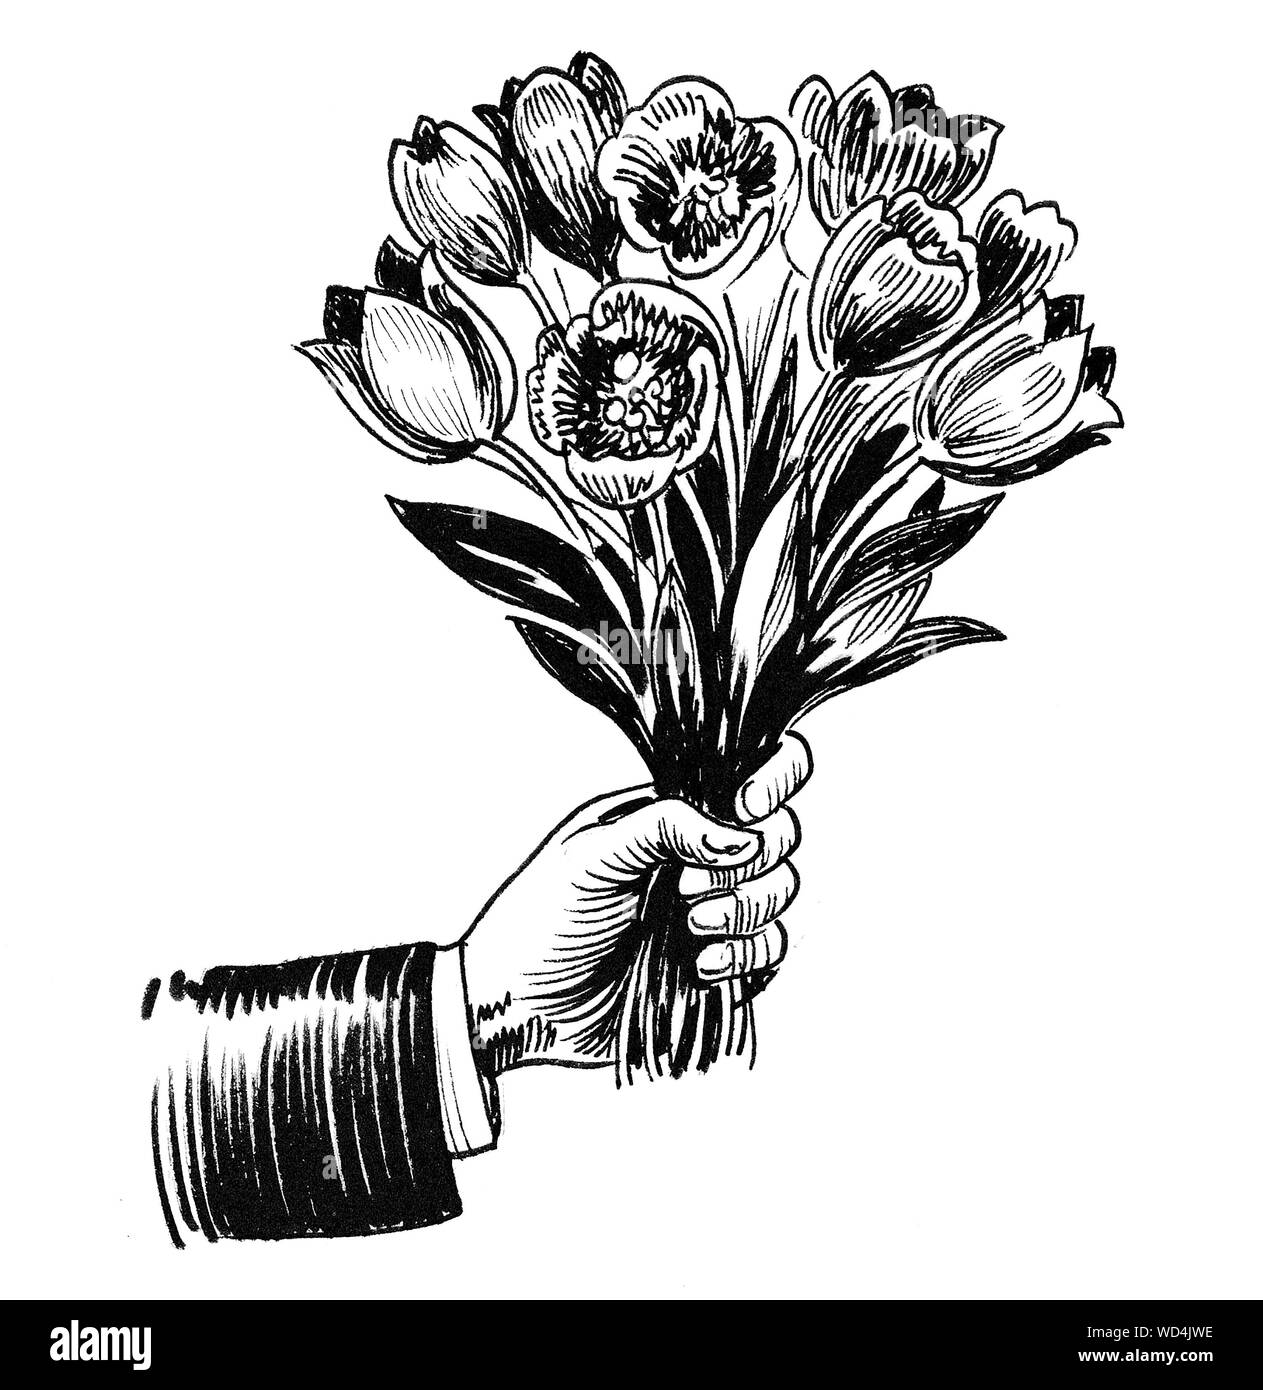 Hand Holding A Flower Bouquet Ink Black And White Drawing Stock Photo Alamy